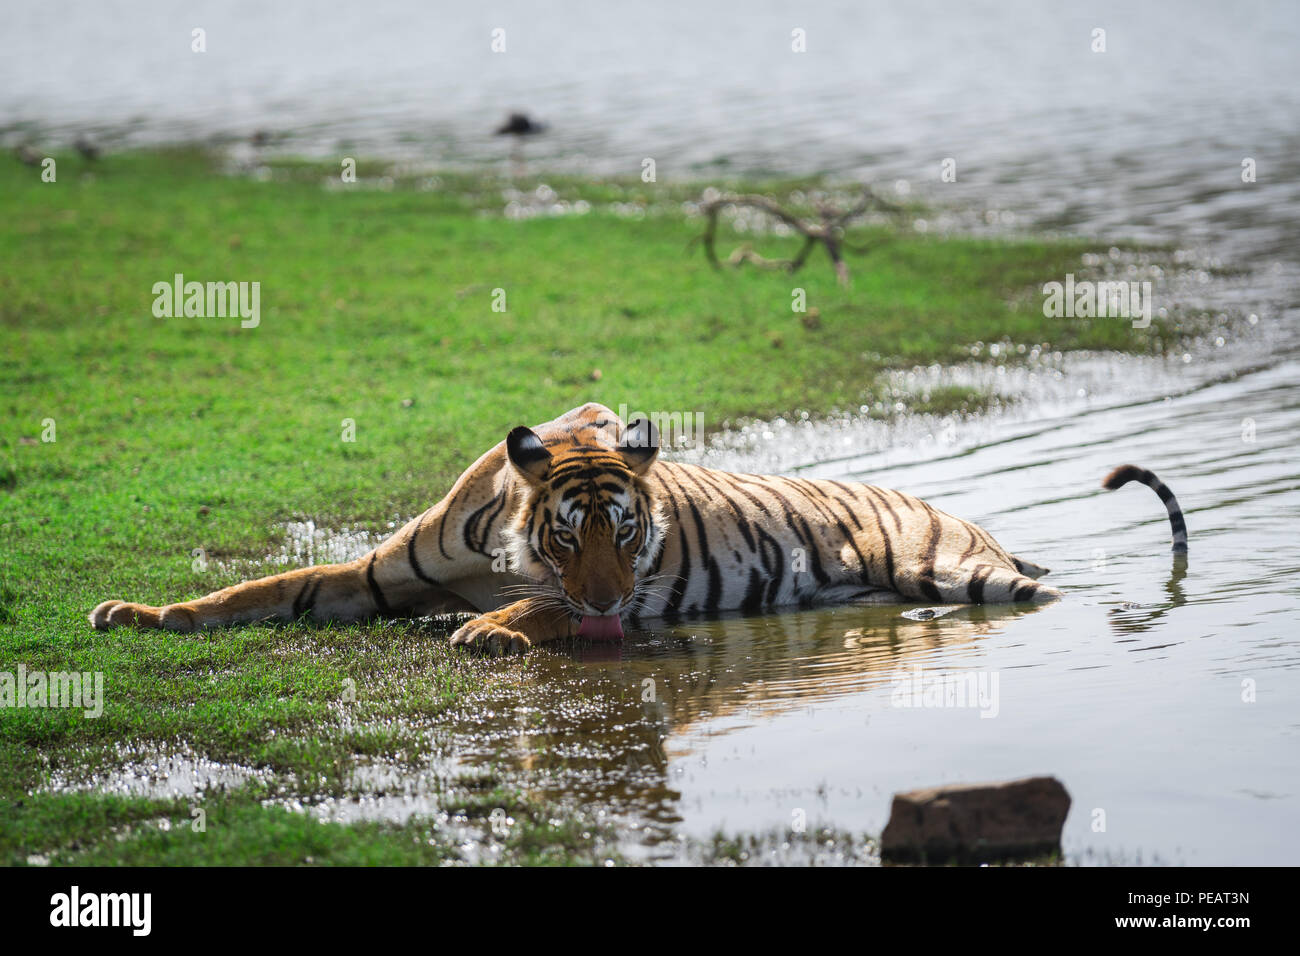 A tigress quenching her thirst in a lake at Ranthambore National Park - Stock Image